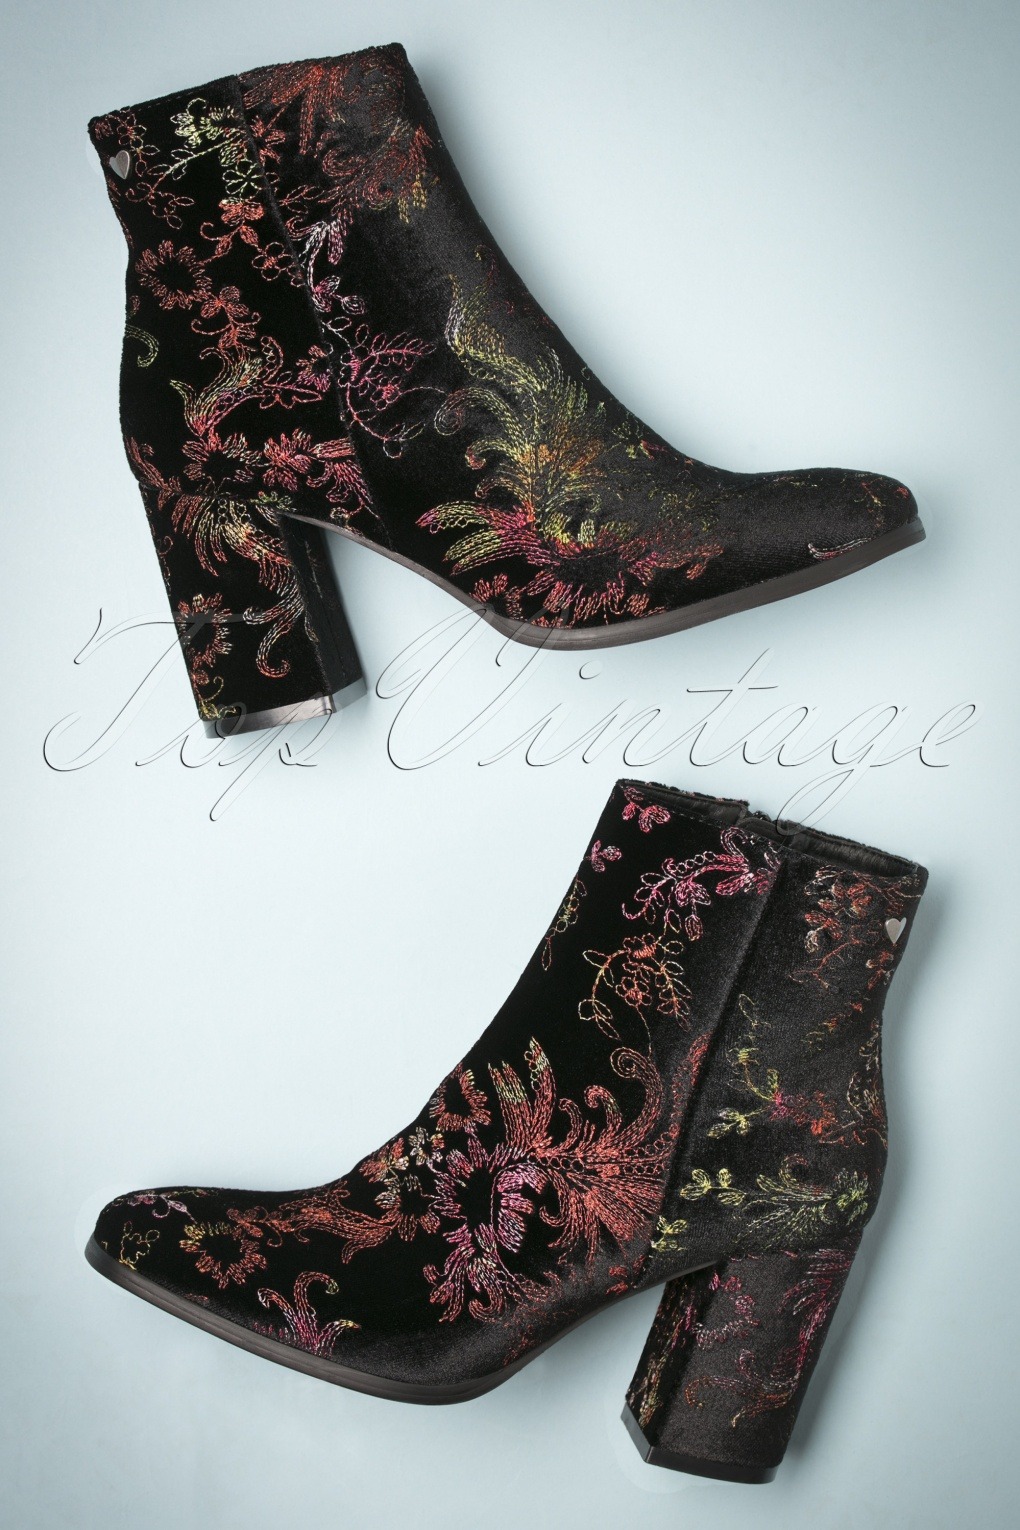 Retro Boots, Granny Boots, 70s Boots 70s Floral Explosion Velvet Ankle Booties in Black £43.74 AT vintagedancer.com